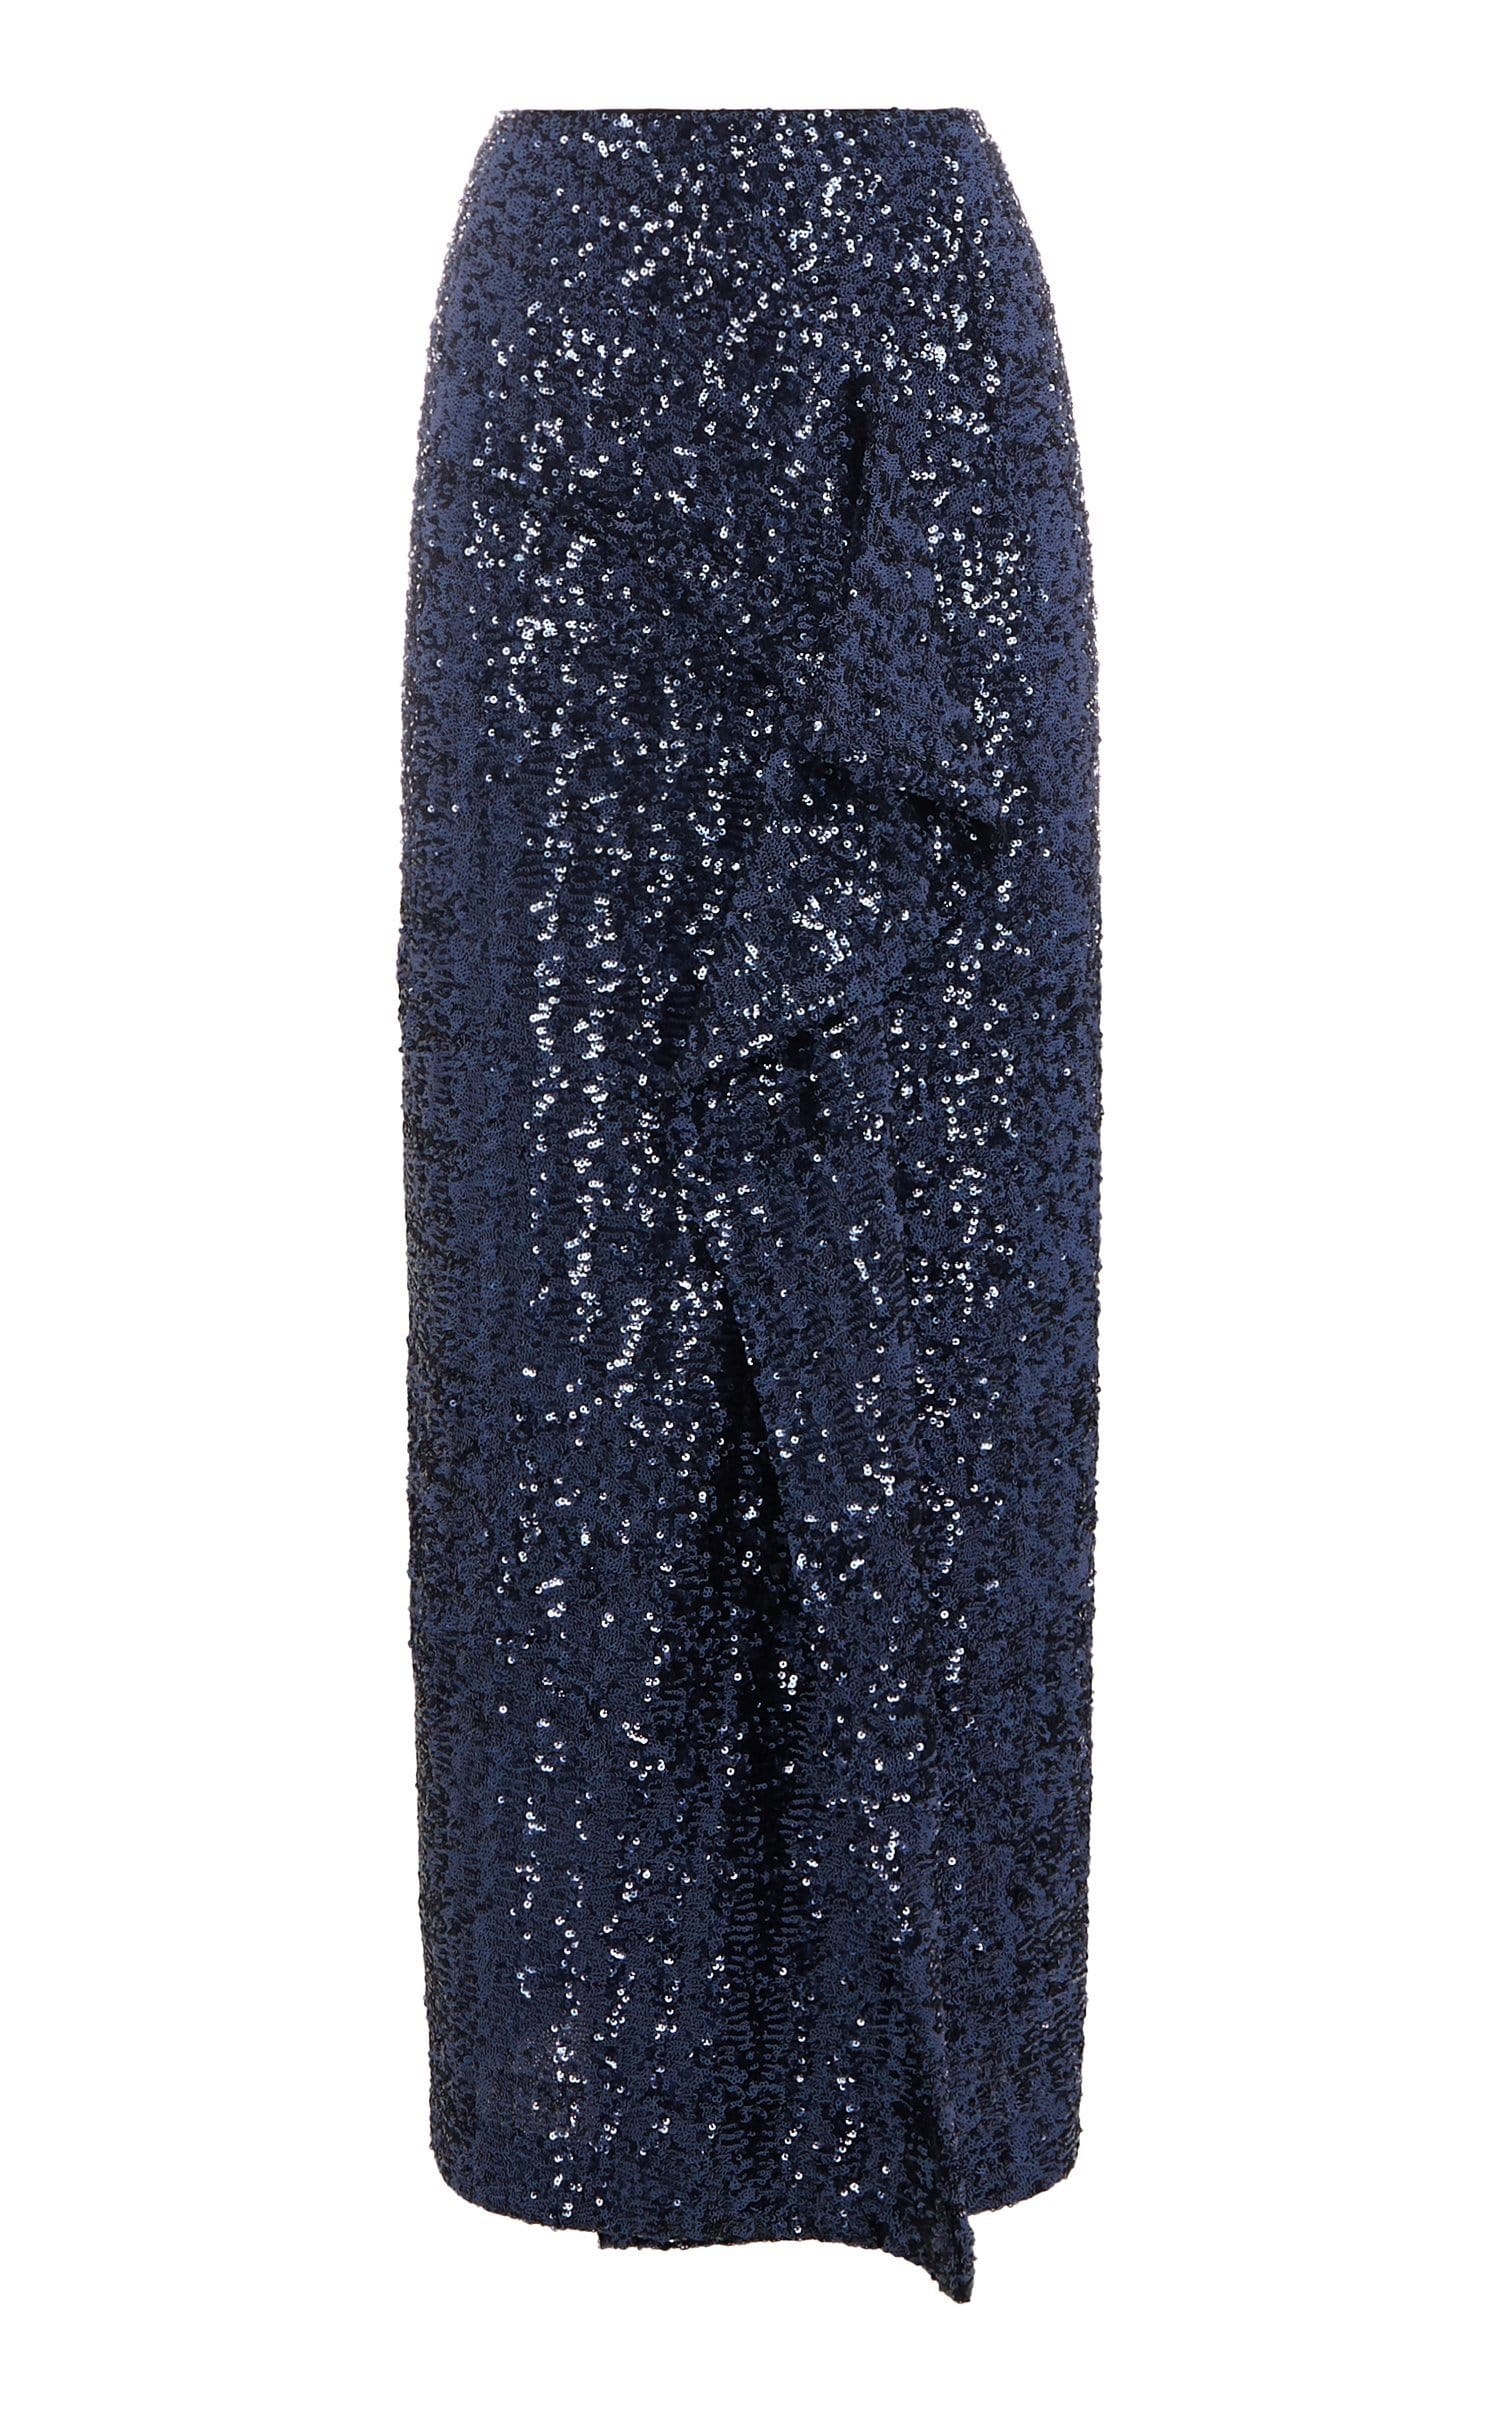 Lowit Skirt In Navy from Roland Mouret